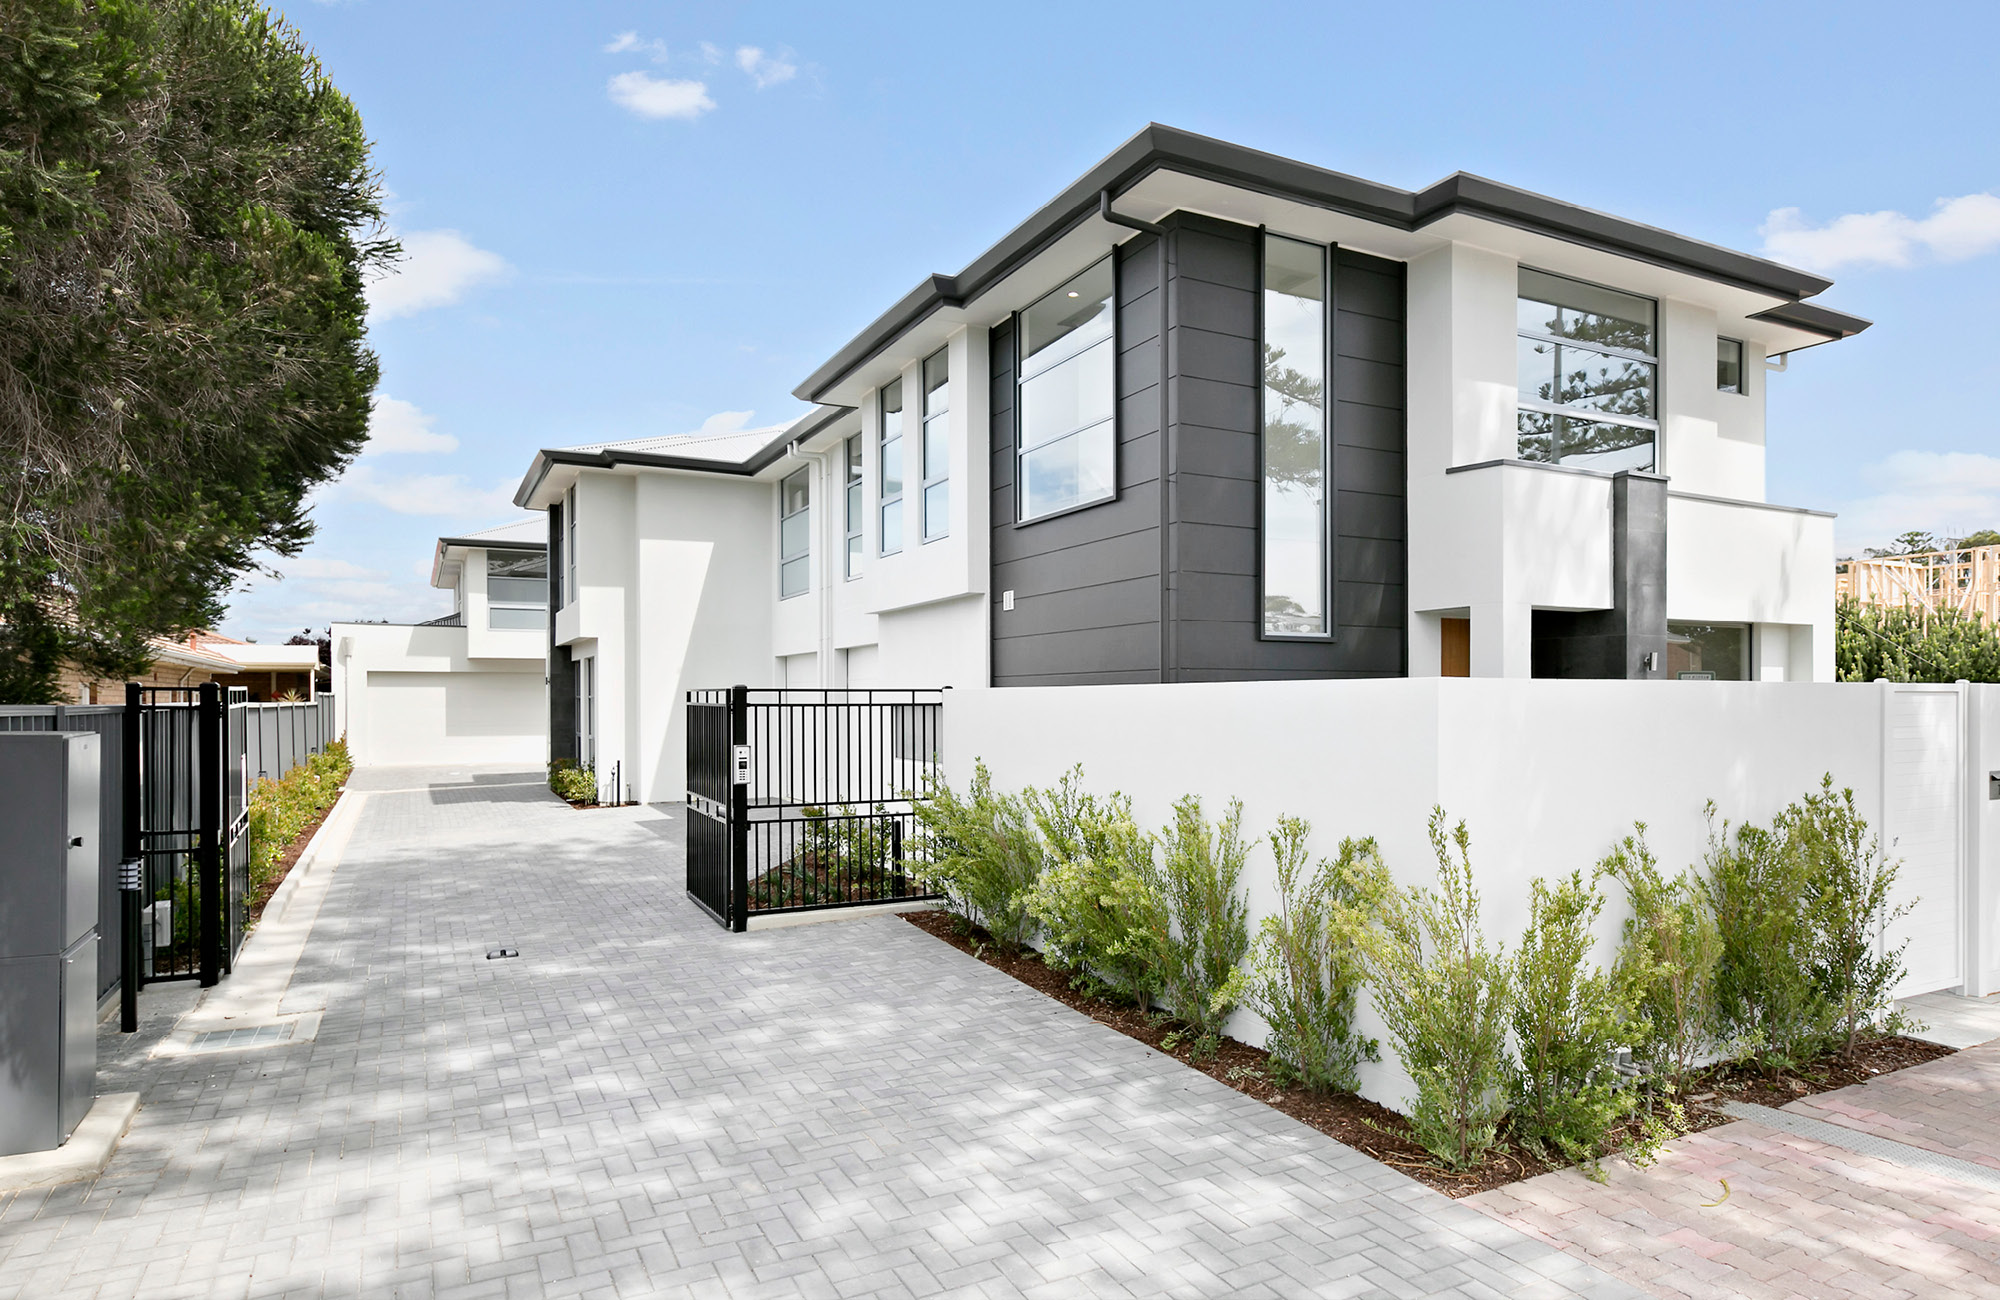 Tapleys Hill Property Development